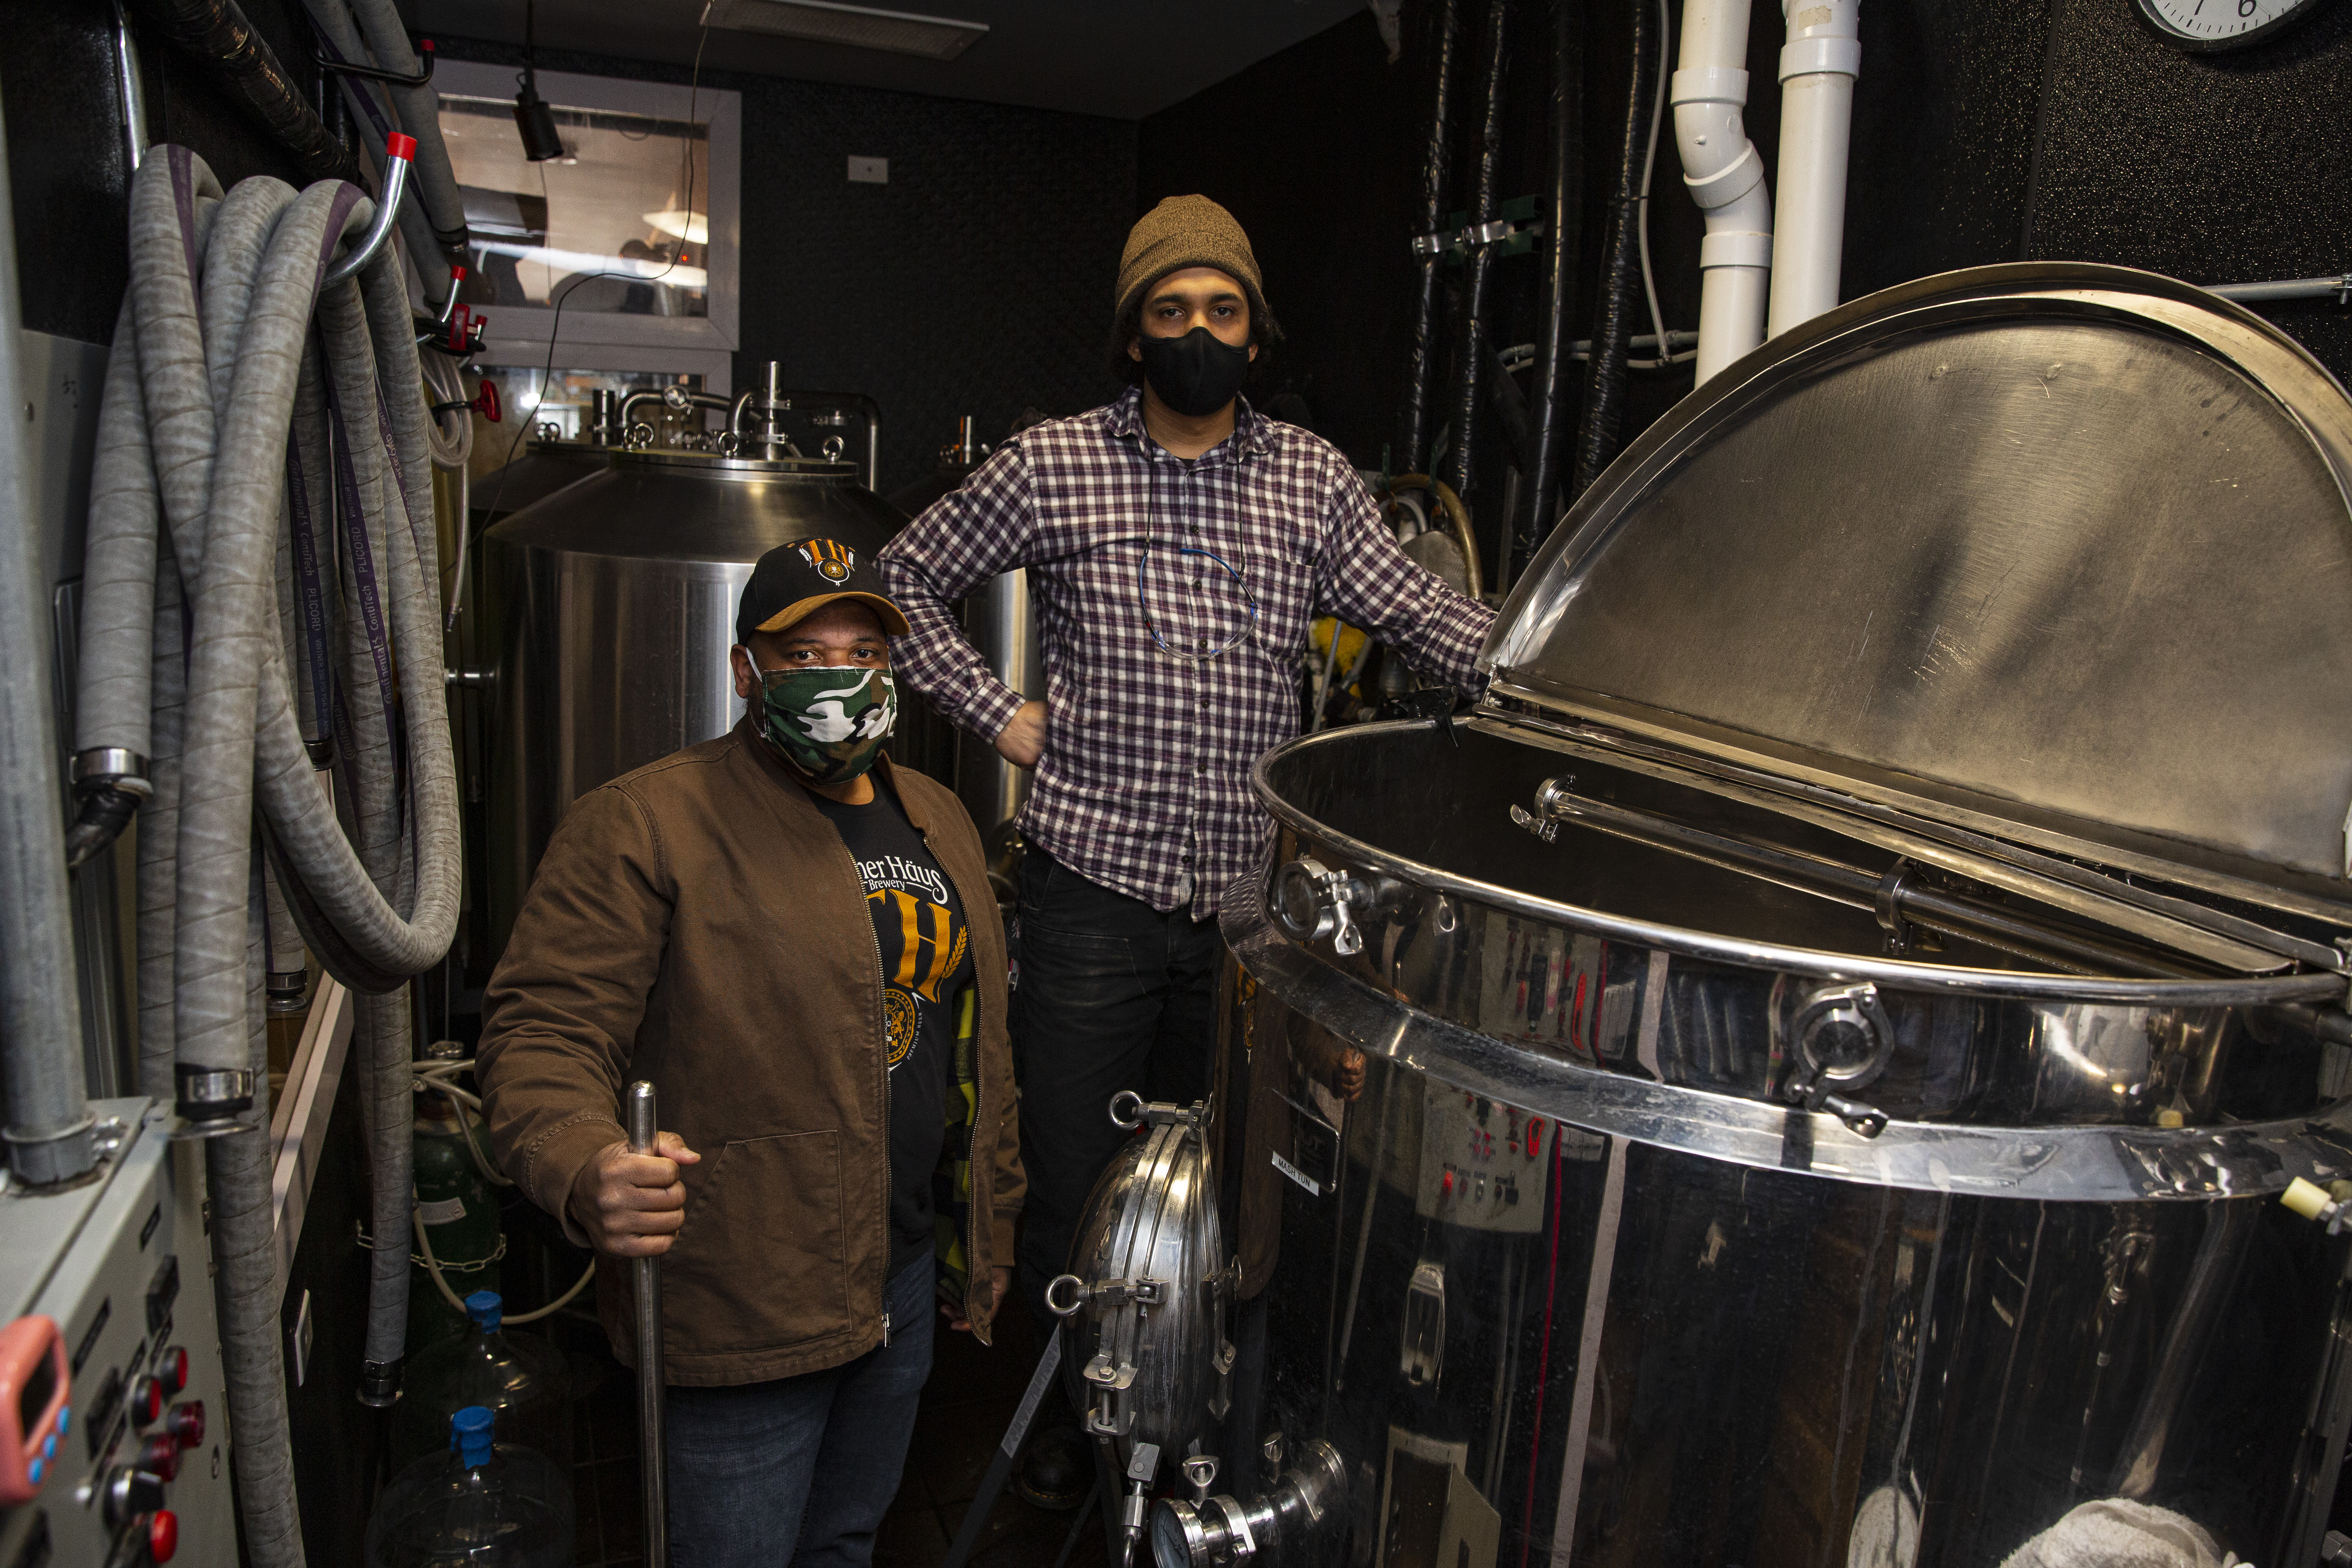 Turner Haus Brewery co-owner Steven Turner (left) and consultant and Alulu Brewery and Pub head brewer Jason James are photographed at Alulu Brewery and Pub in Pilsen.